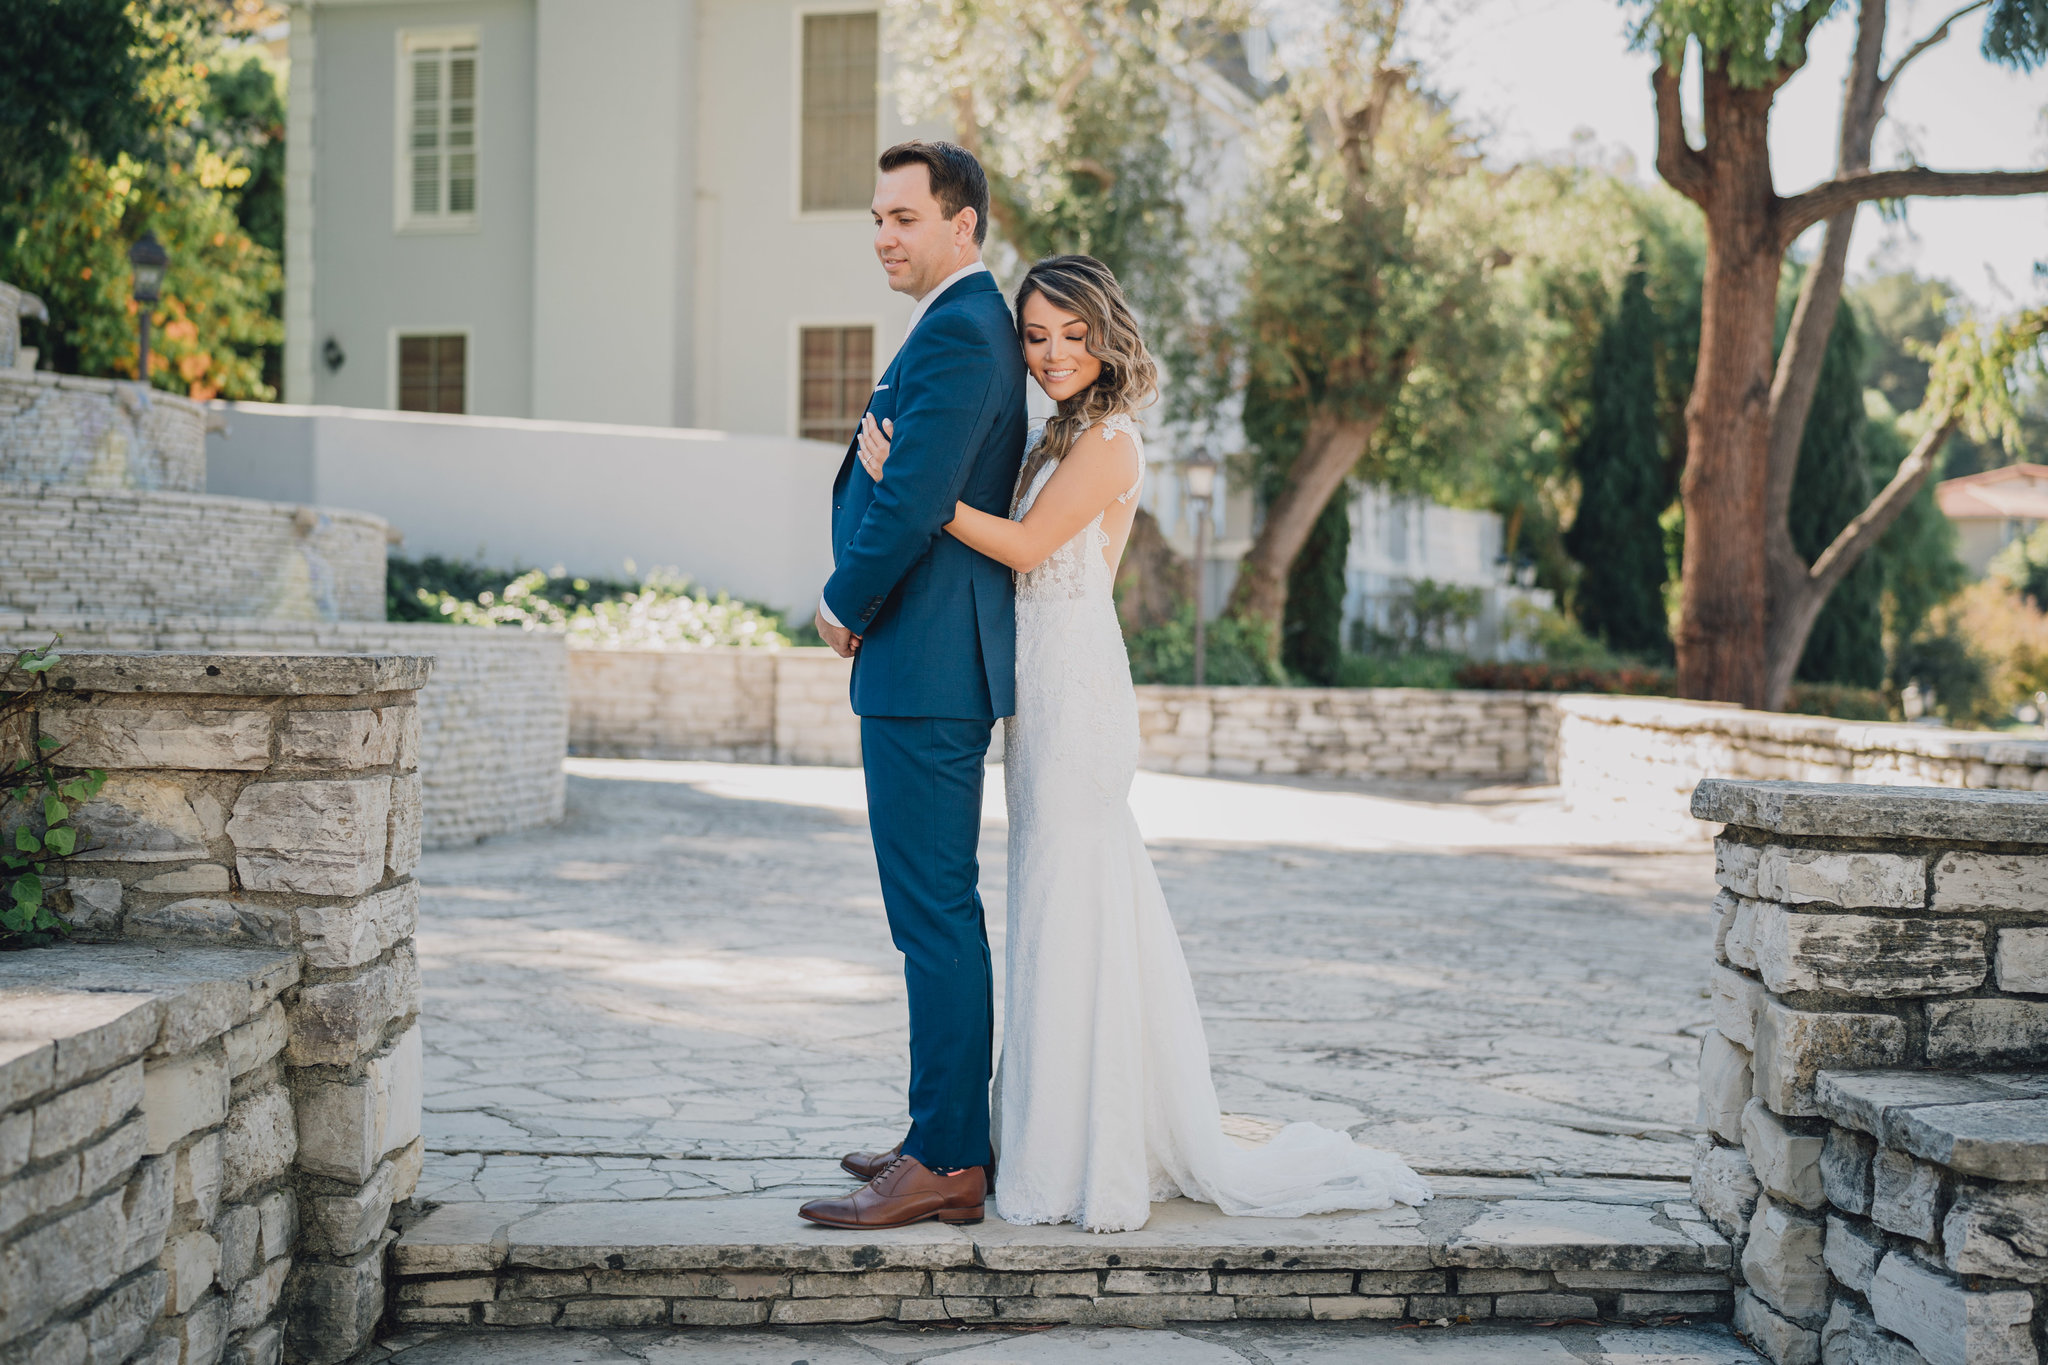 Wedding Hug | La Venta Inn